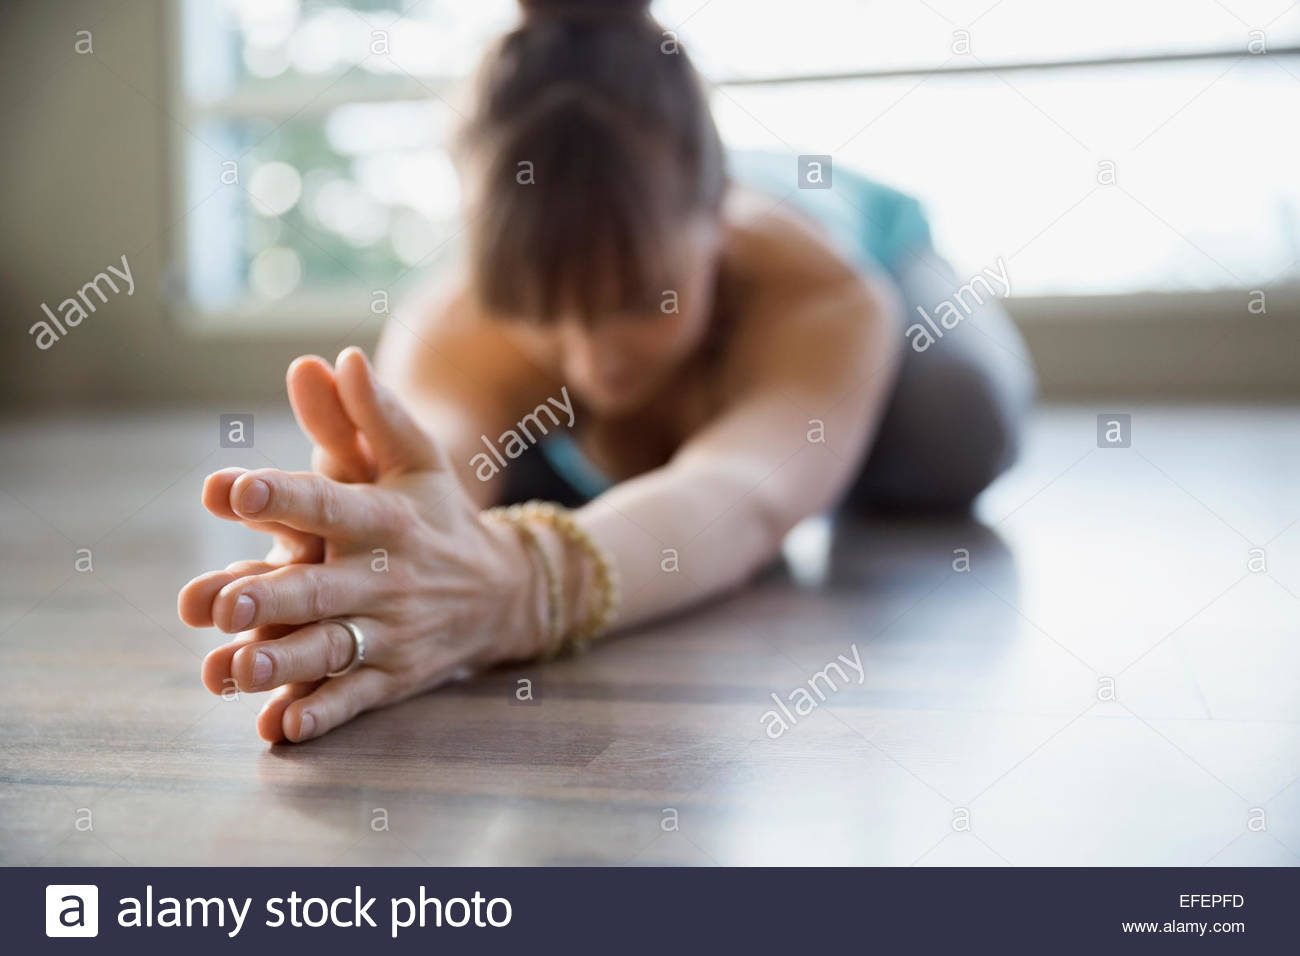 Woman in yoga childs pose with hands clasped - Stock Image